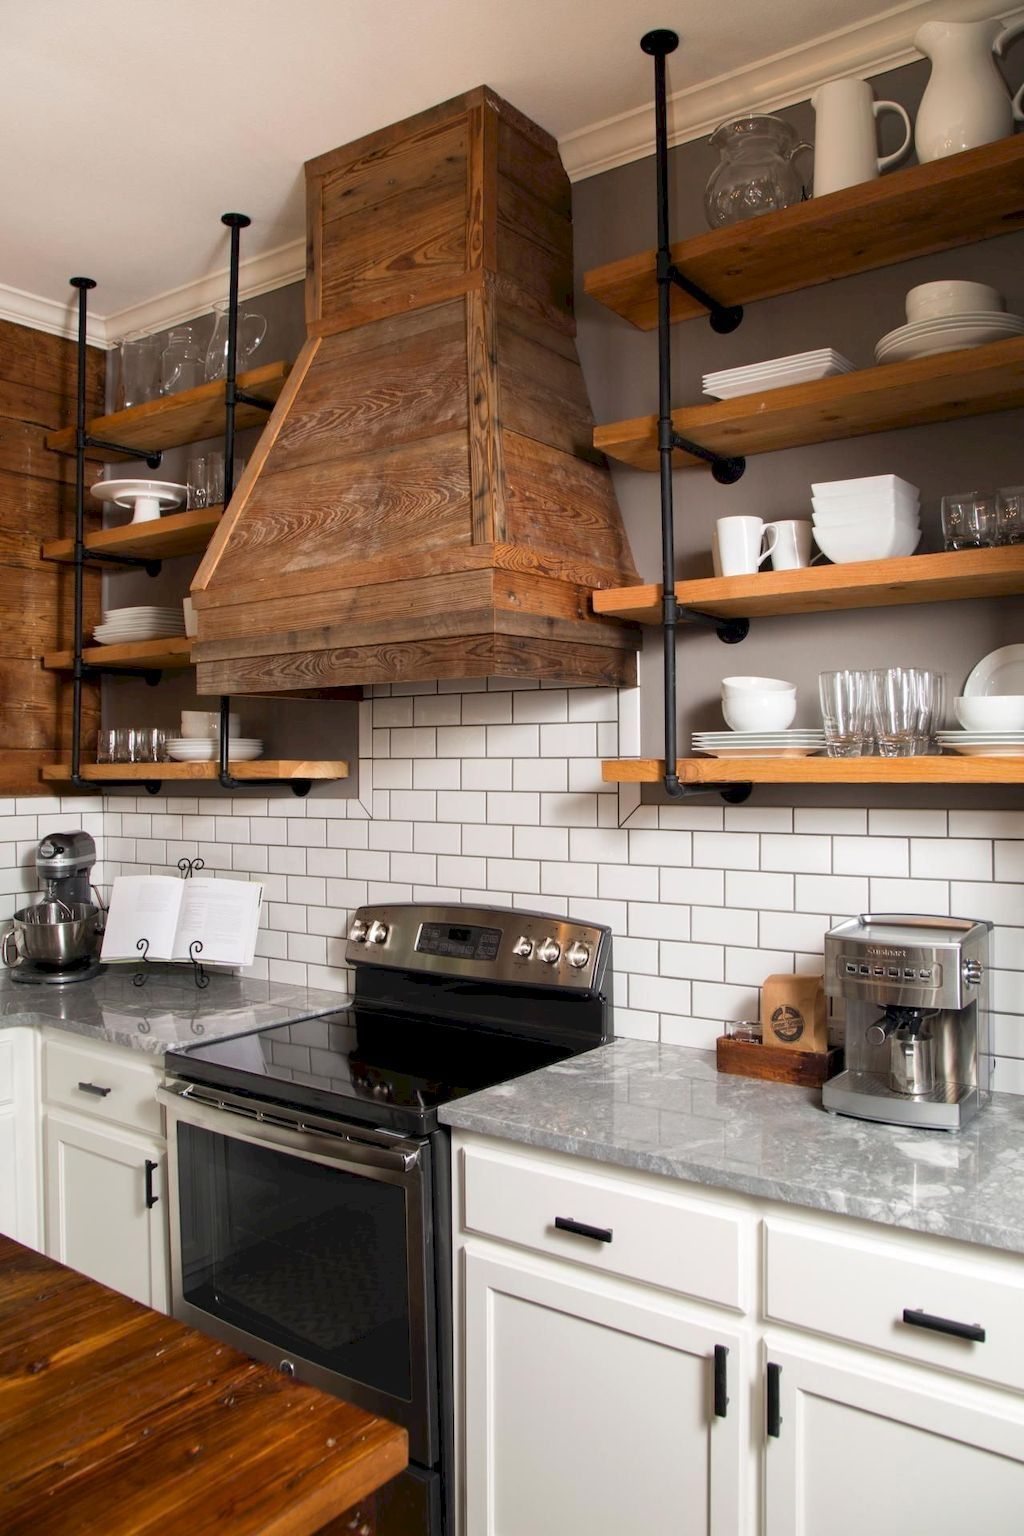 4209a687b6f16c5162b9062ee0526a16 Ideas For Decorating Above Kitchen Cabinets Joanna Gaines on joanna gaines bedroom ideas, joanna gaines home ideas, joanna gaines decor ideas, joanna gaines living rooms, joanna gaines bath ideas, joanna gaines furniture,